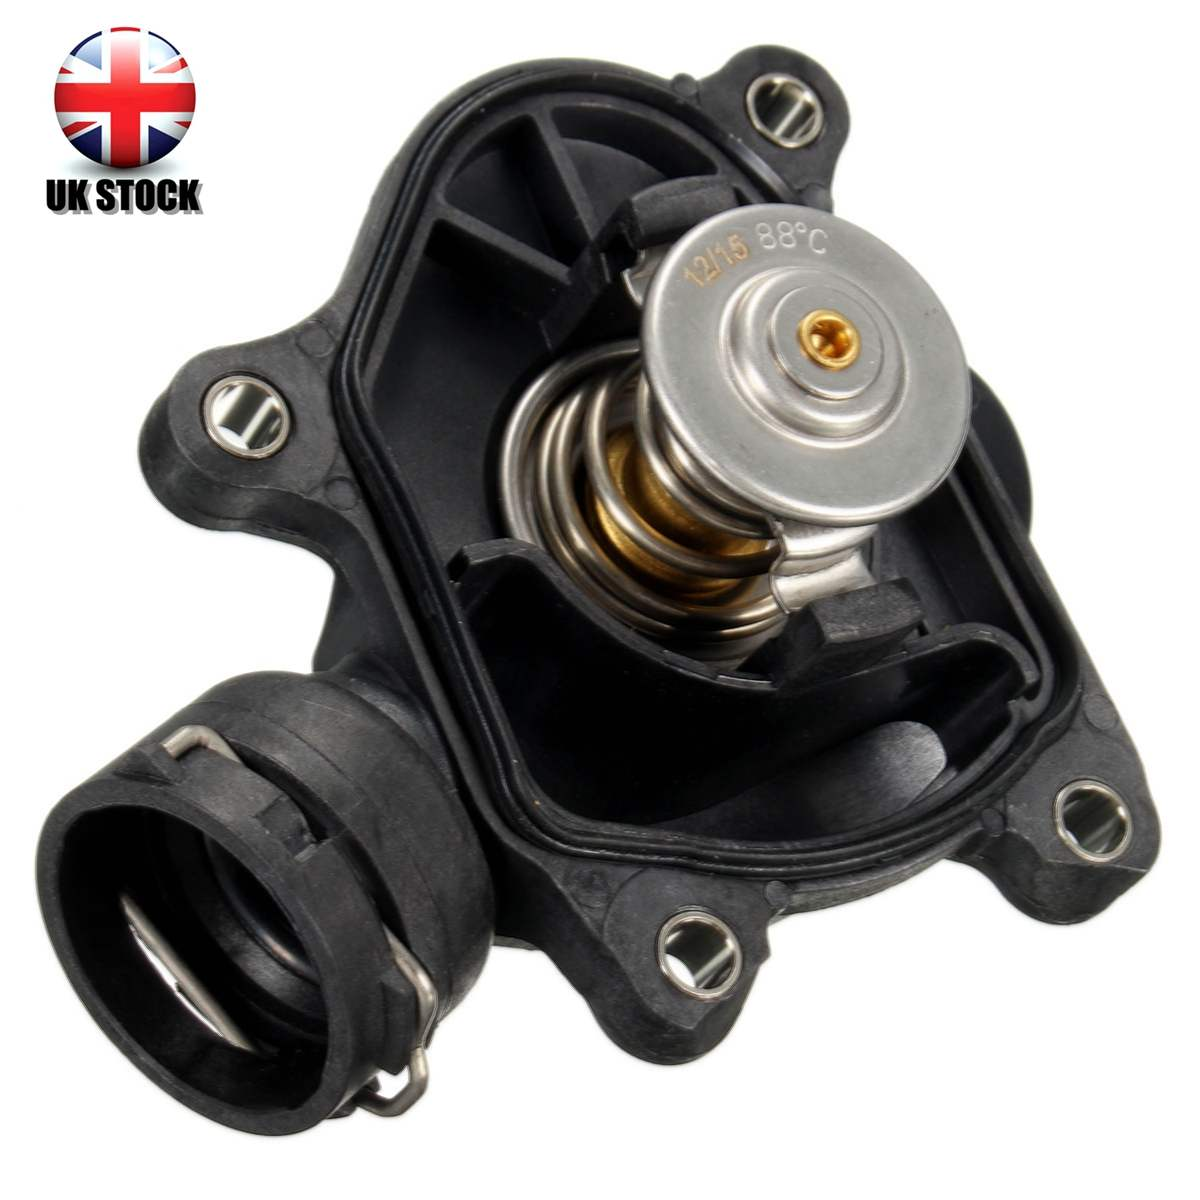 1pc Thermostat With Housing Coolant Opening Temperature 88 degree For BMW 11517787113 11517805811 11517789014 11517787052